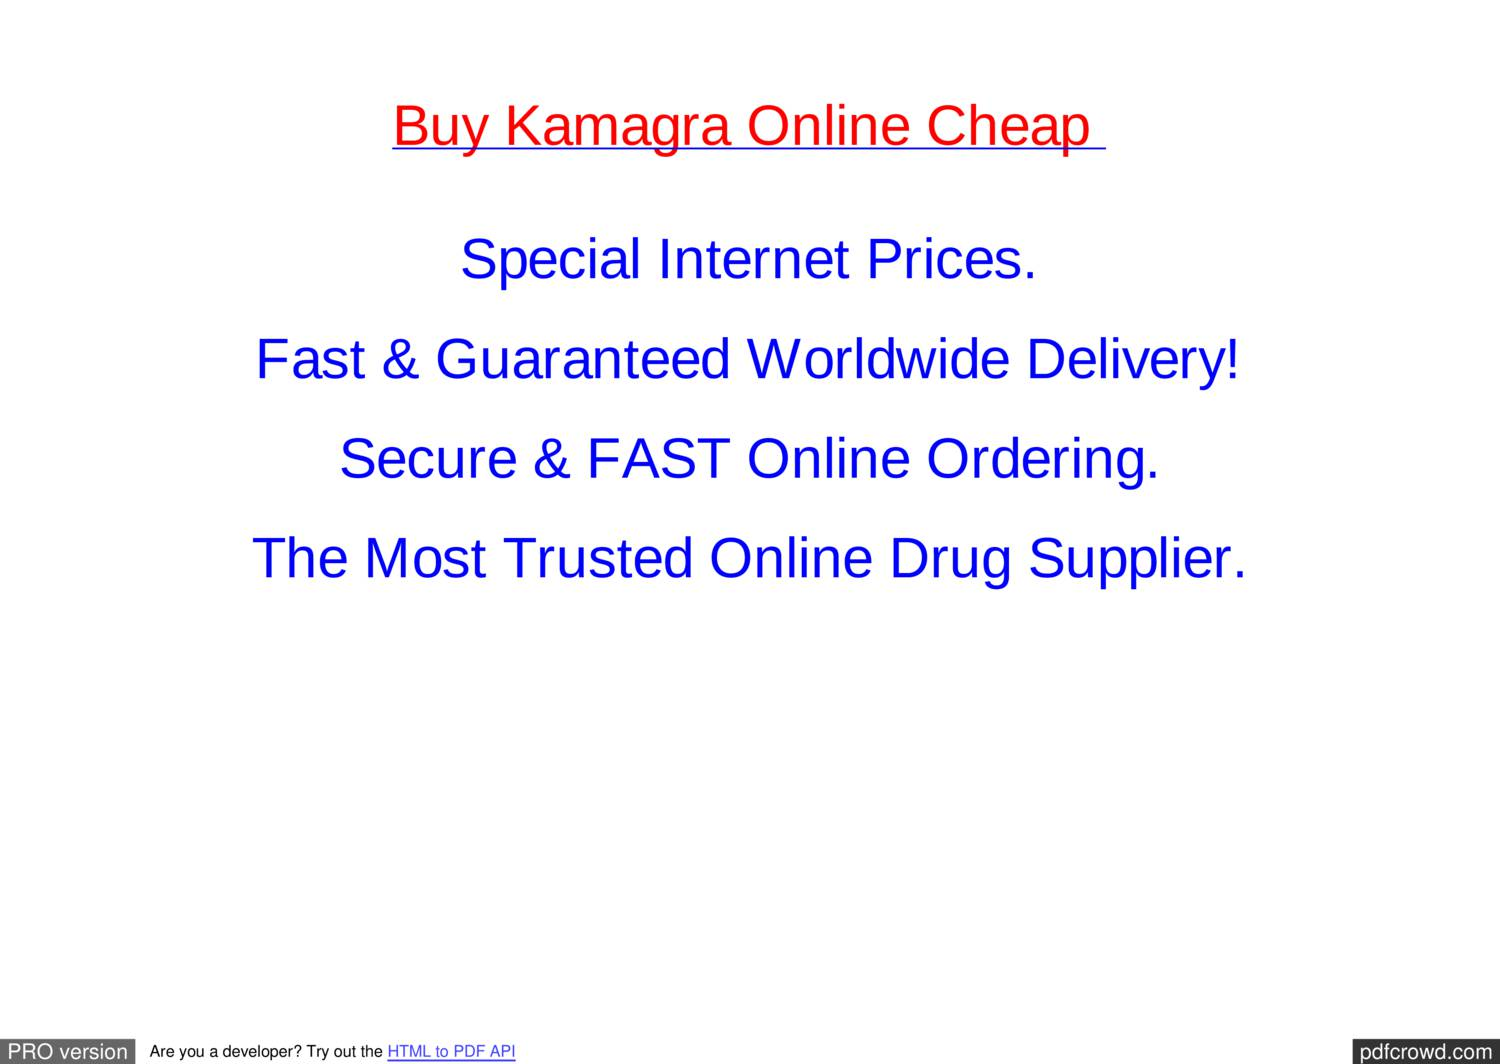 How much does kamagra cost